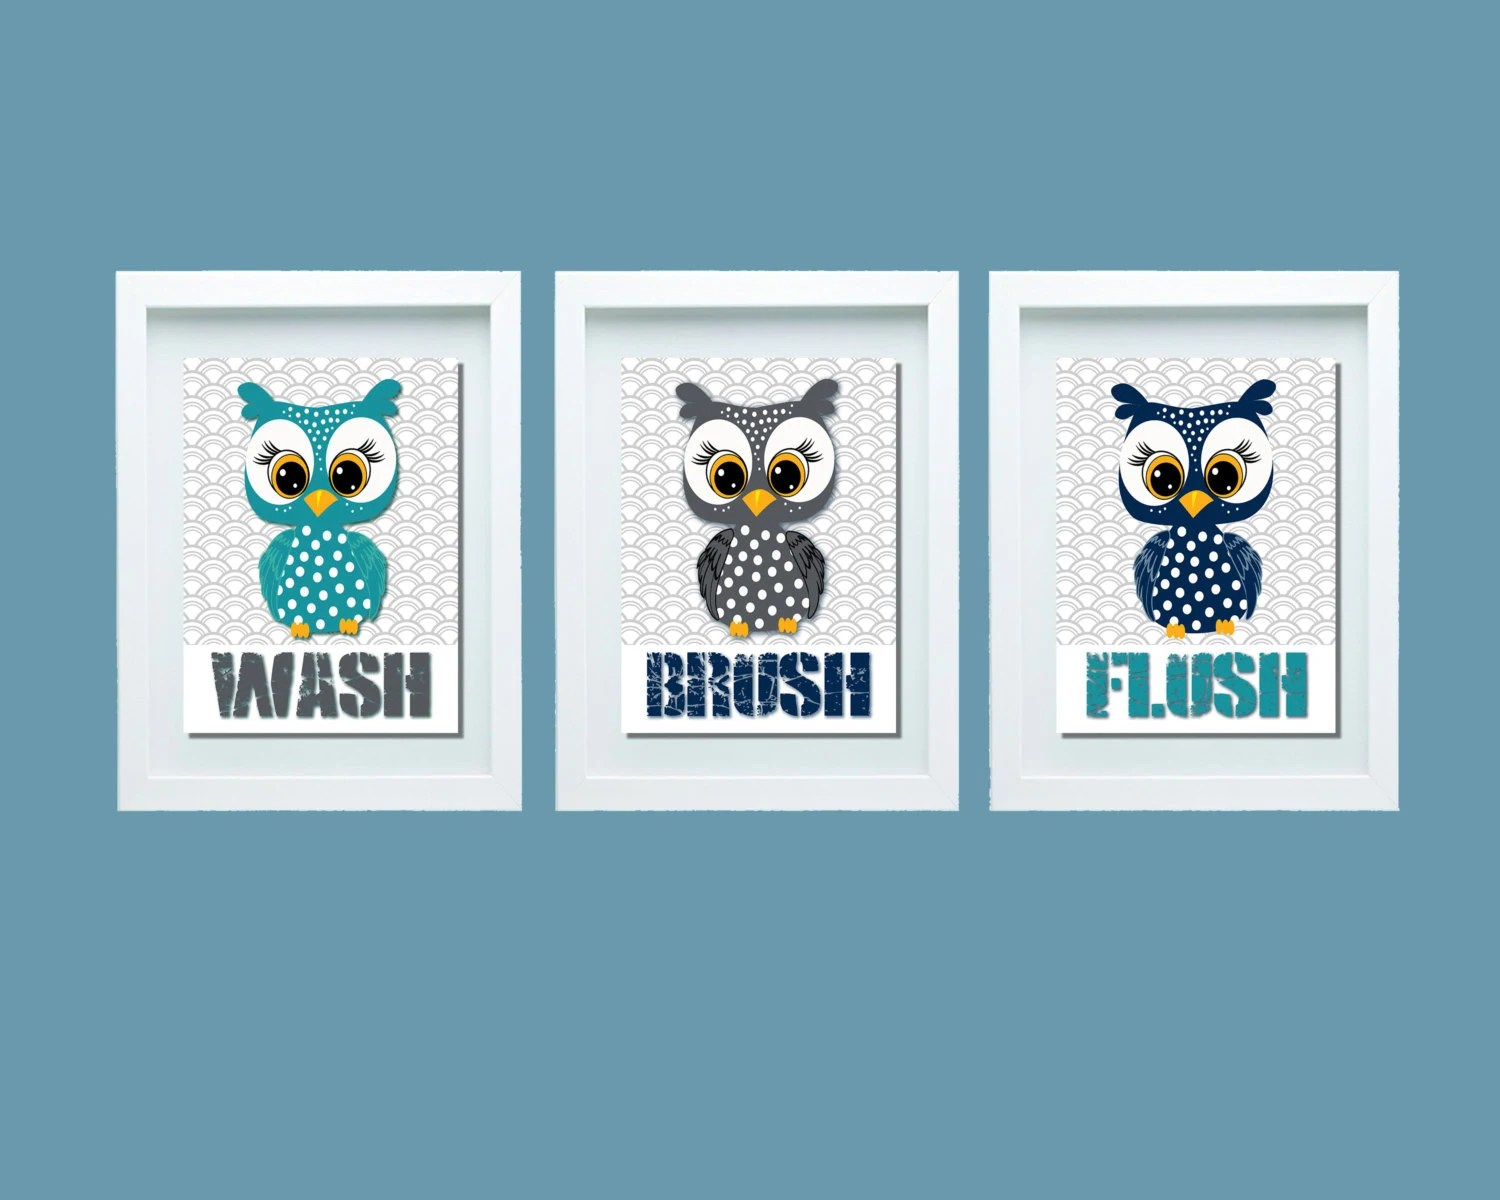 Owl Decor For Bathroom Owl Bathroom Decor Owl Bathroom Set Bathroom Rules Wash Etsy